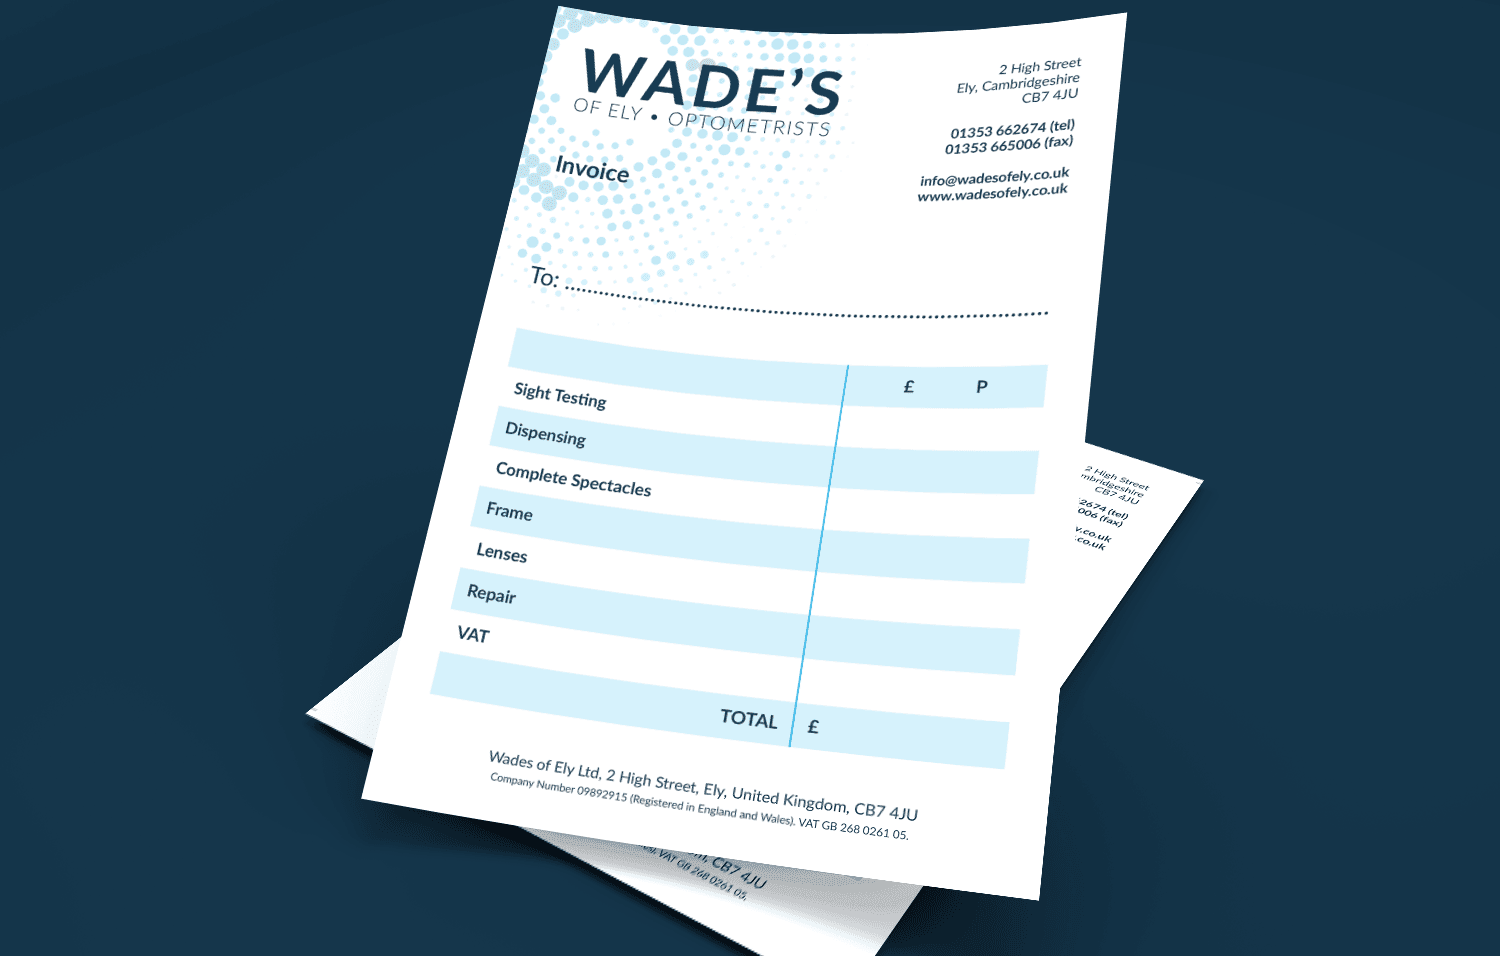 Wades of Ely invoice slips